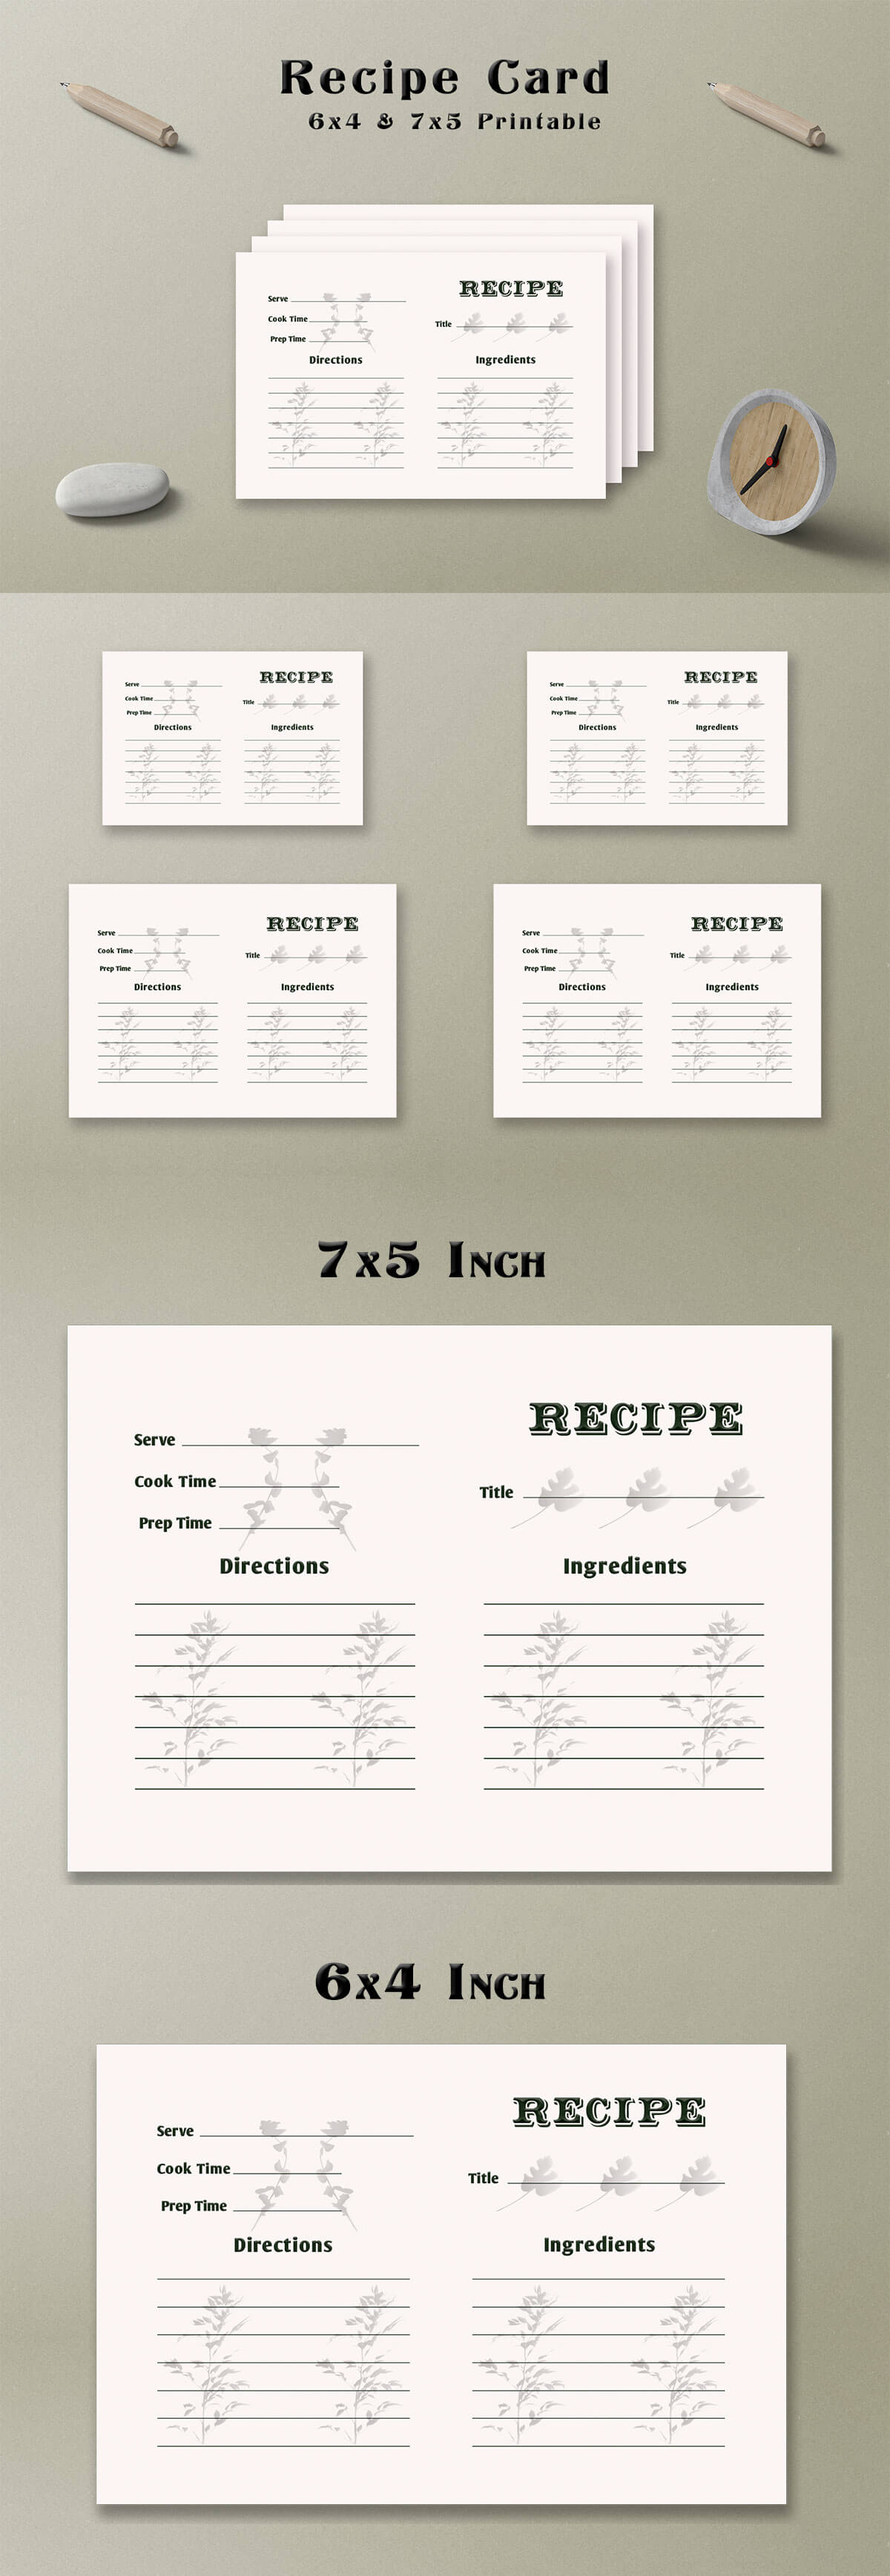 Free Floral Shadow Recipe Card Template